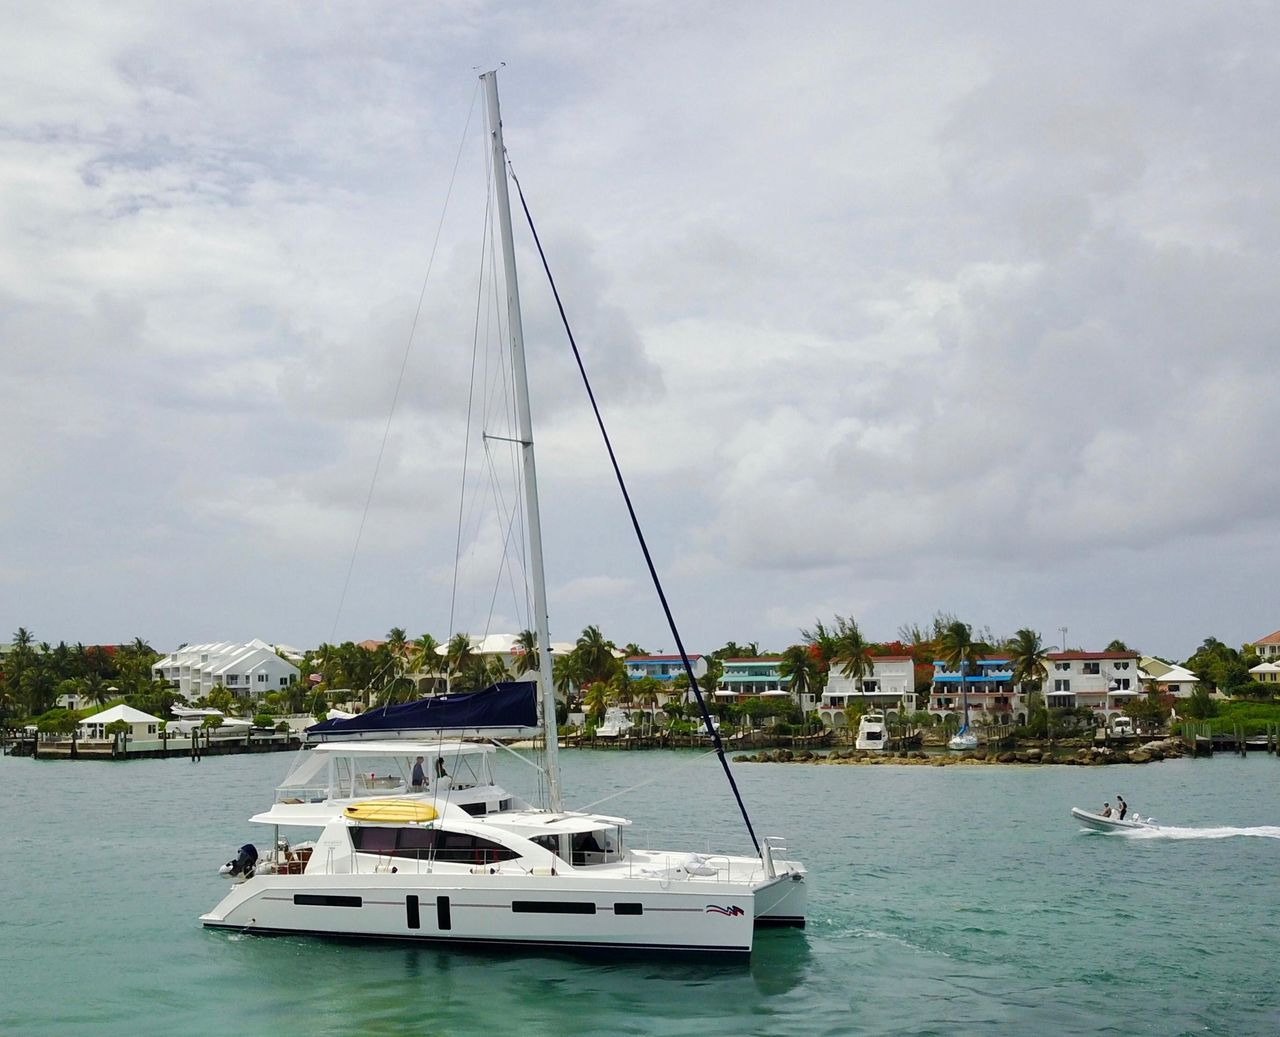 2019 Used Leopard 58 Cruiser Sailboat For Sale - $1,450,000